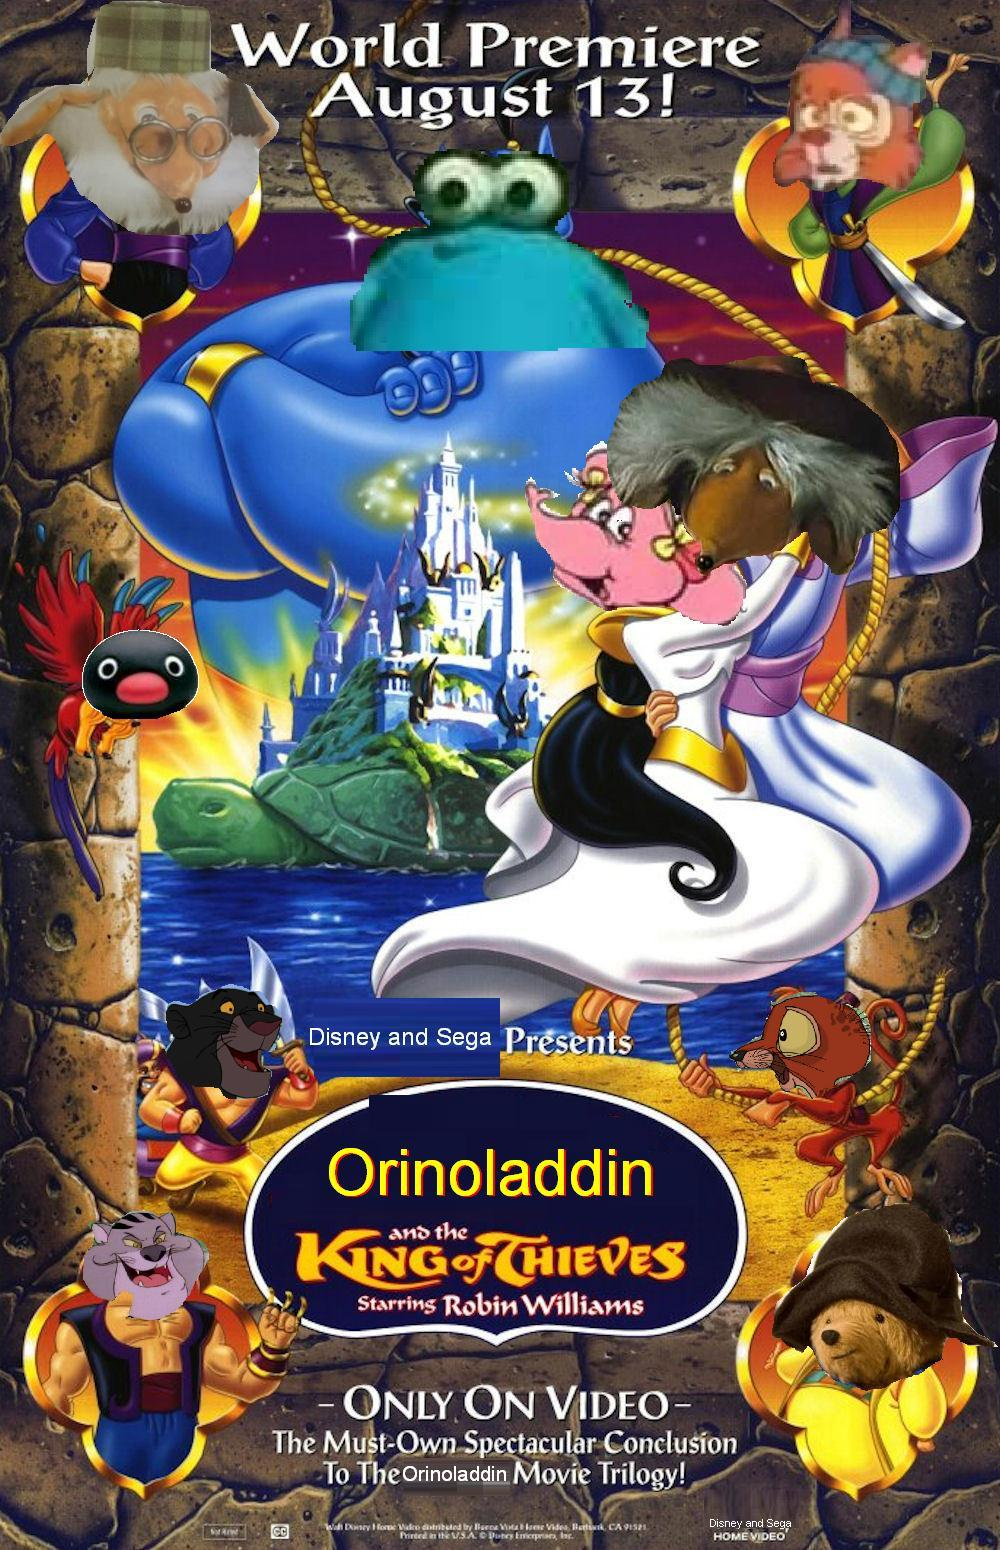 Orinoladdin 3: The King of Thieves